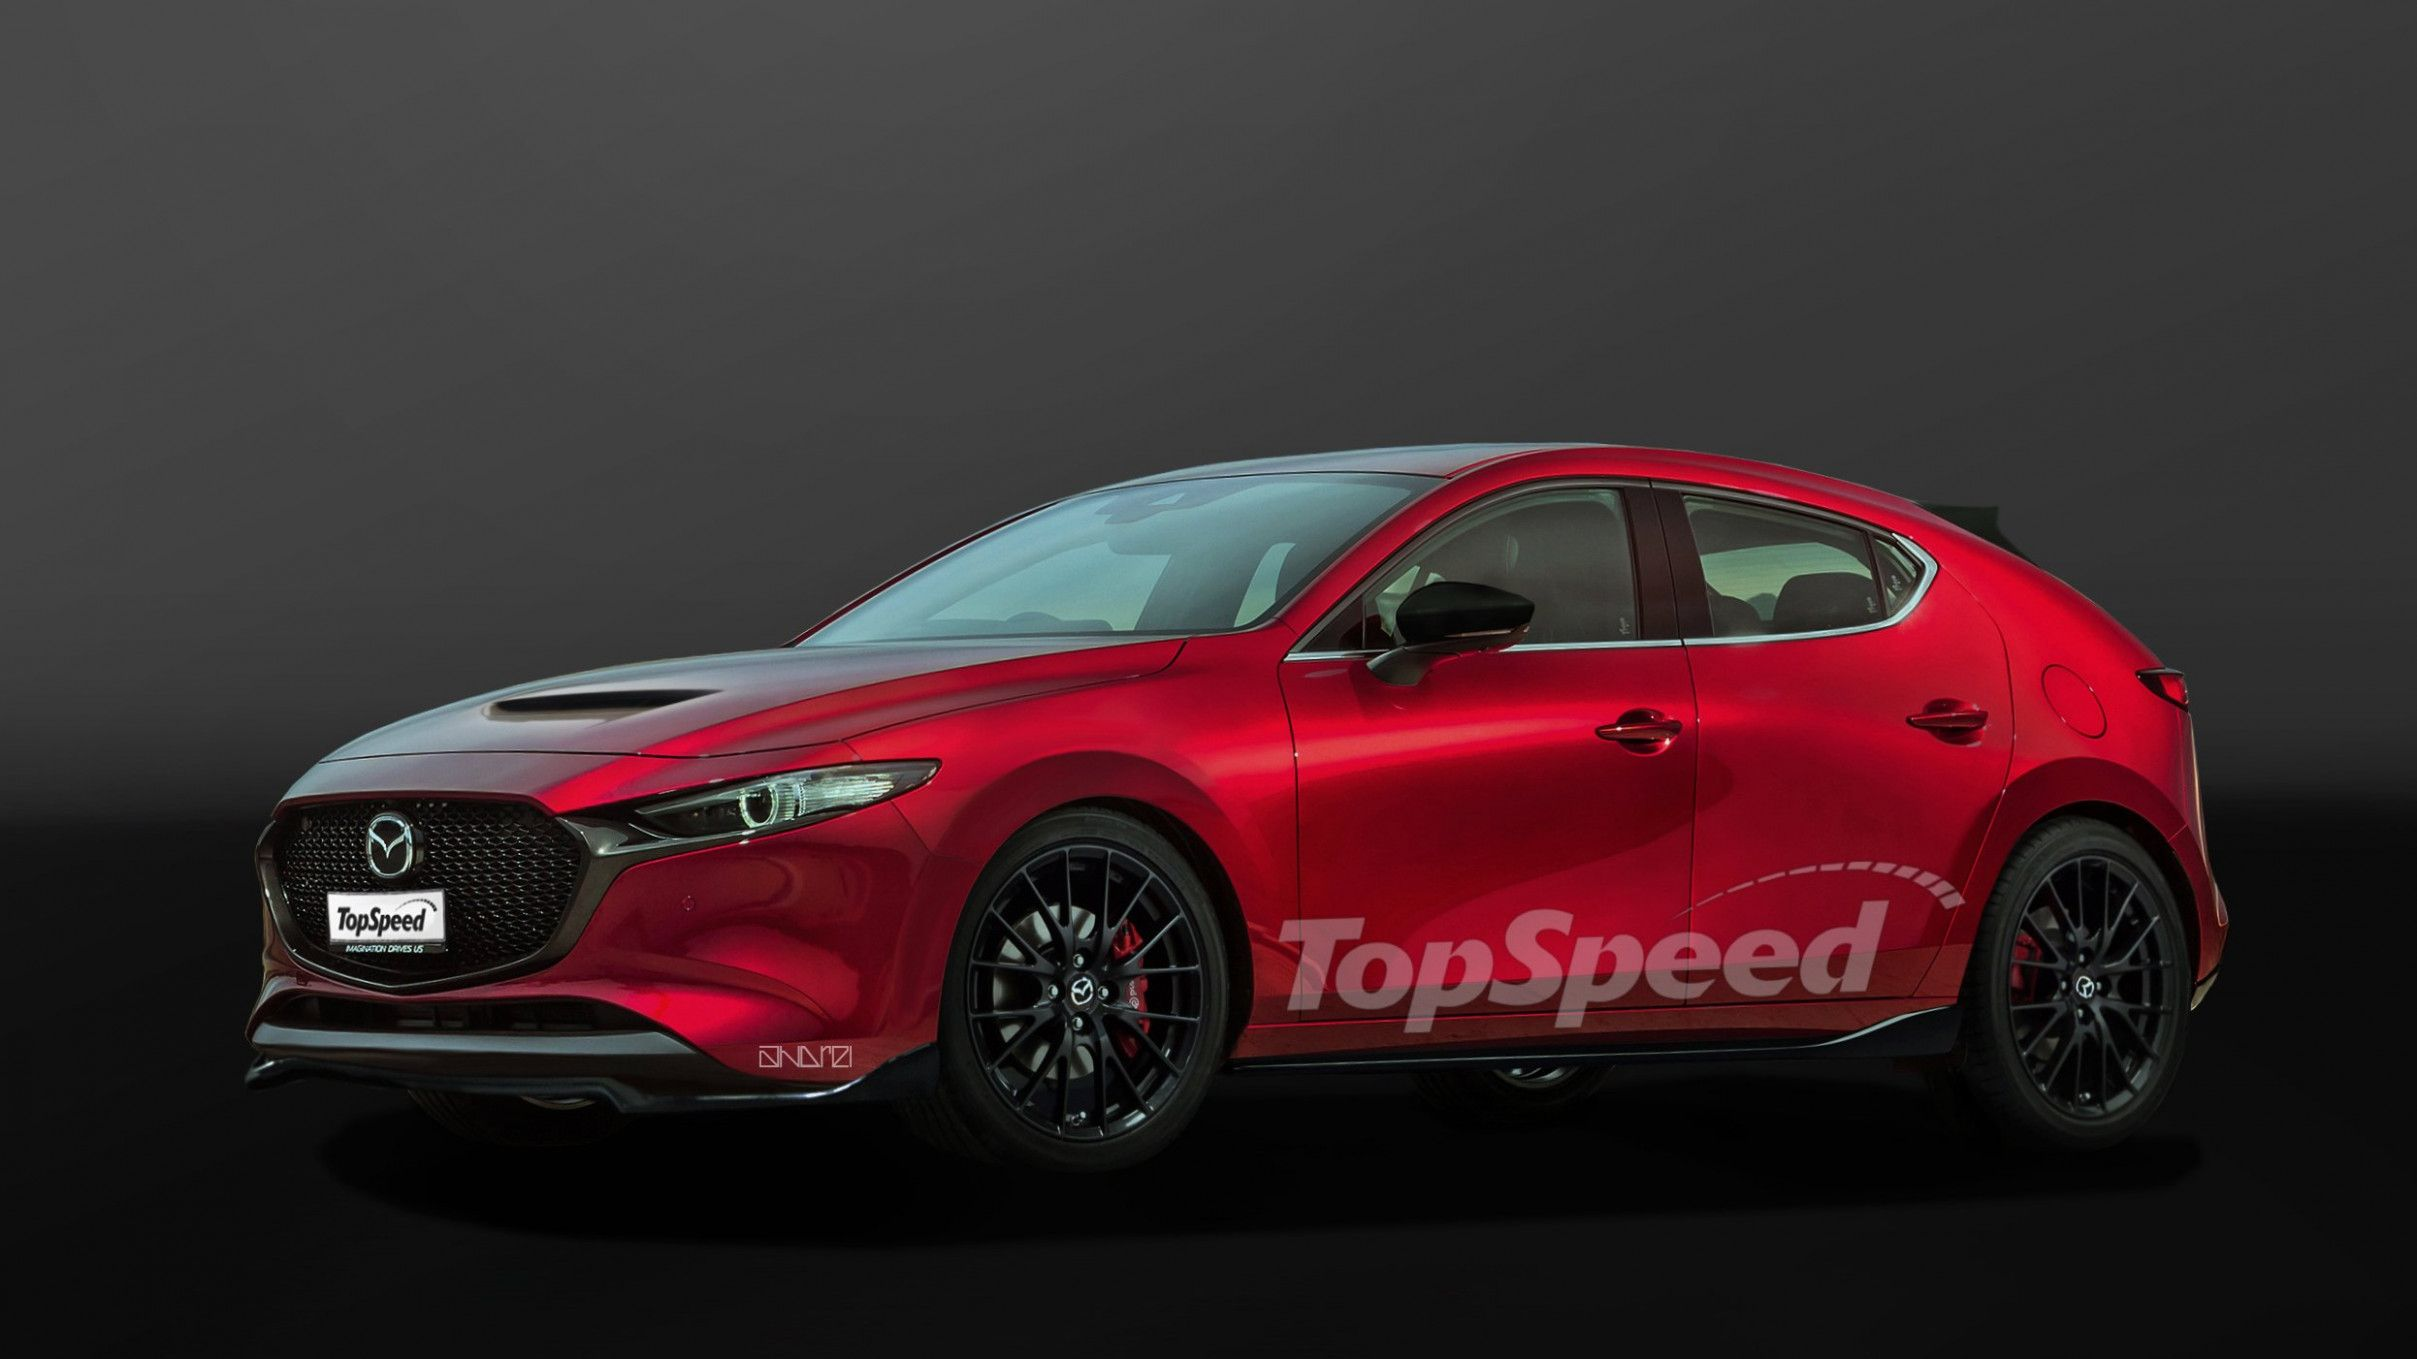 2021 Mazda 3 Sedan Specs And Review 2021 Mazda 3 Sedan